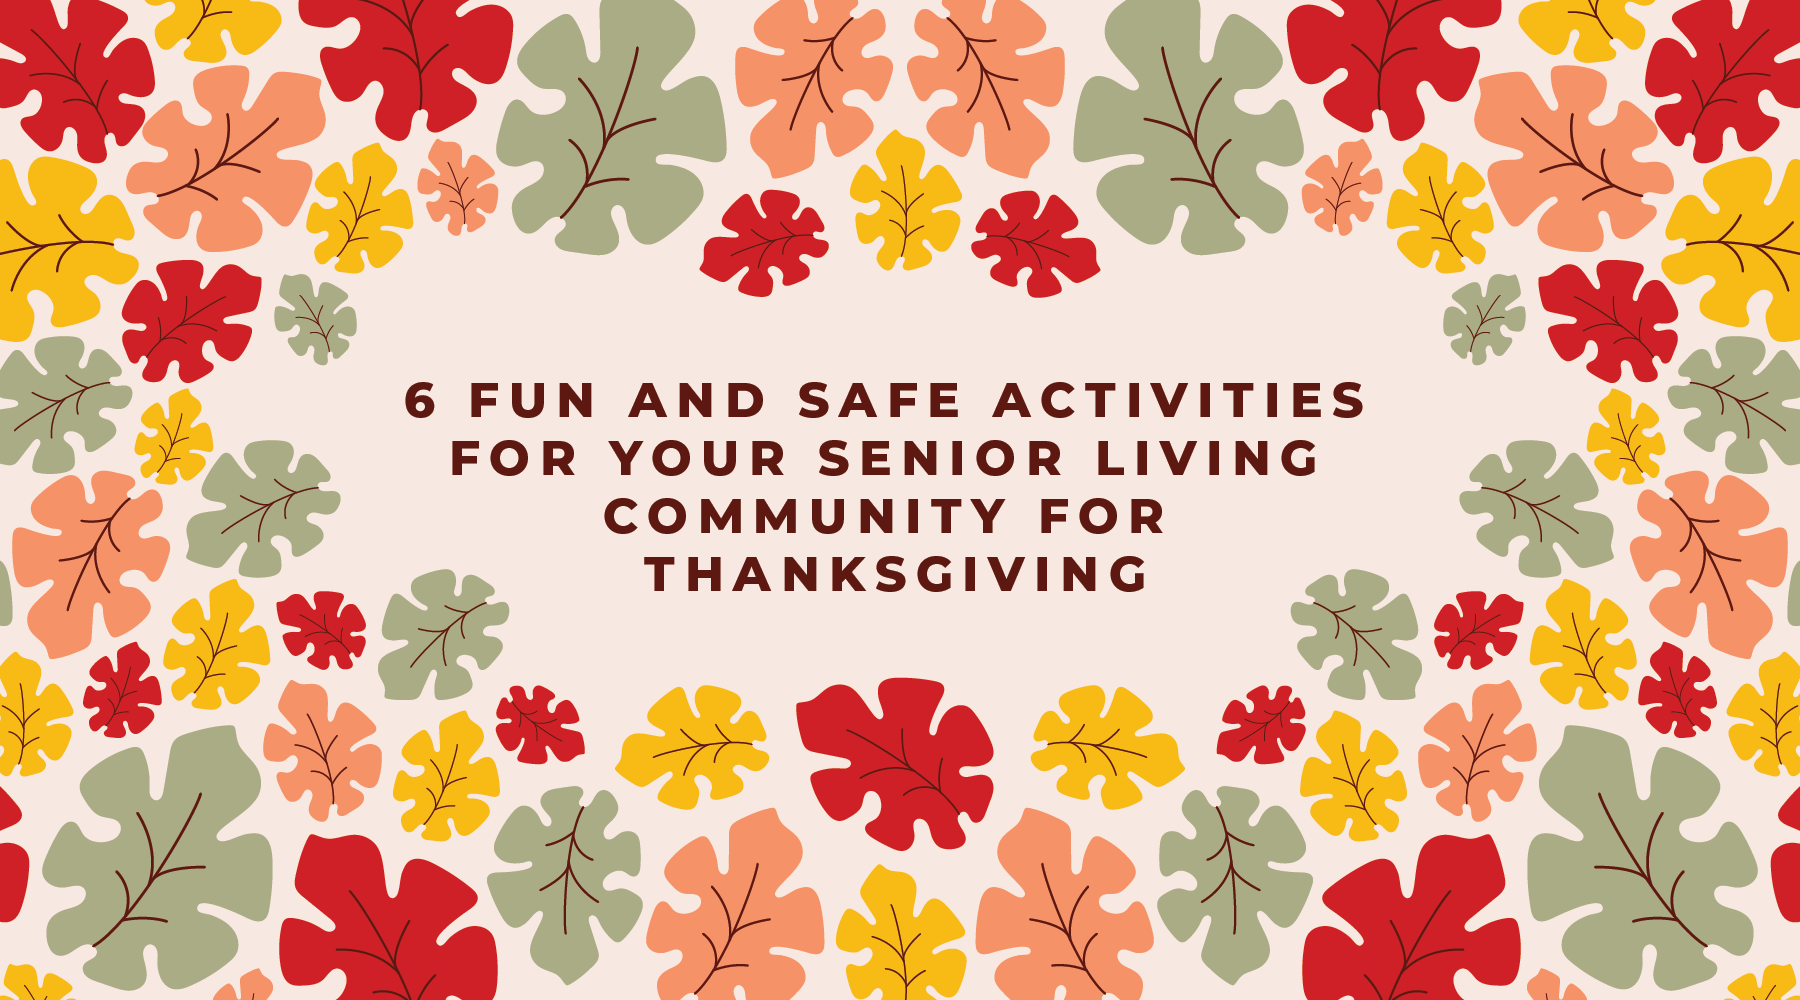 6 Thanksgiving Activities for Your Senior Living Community